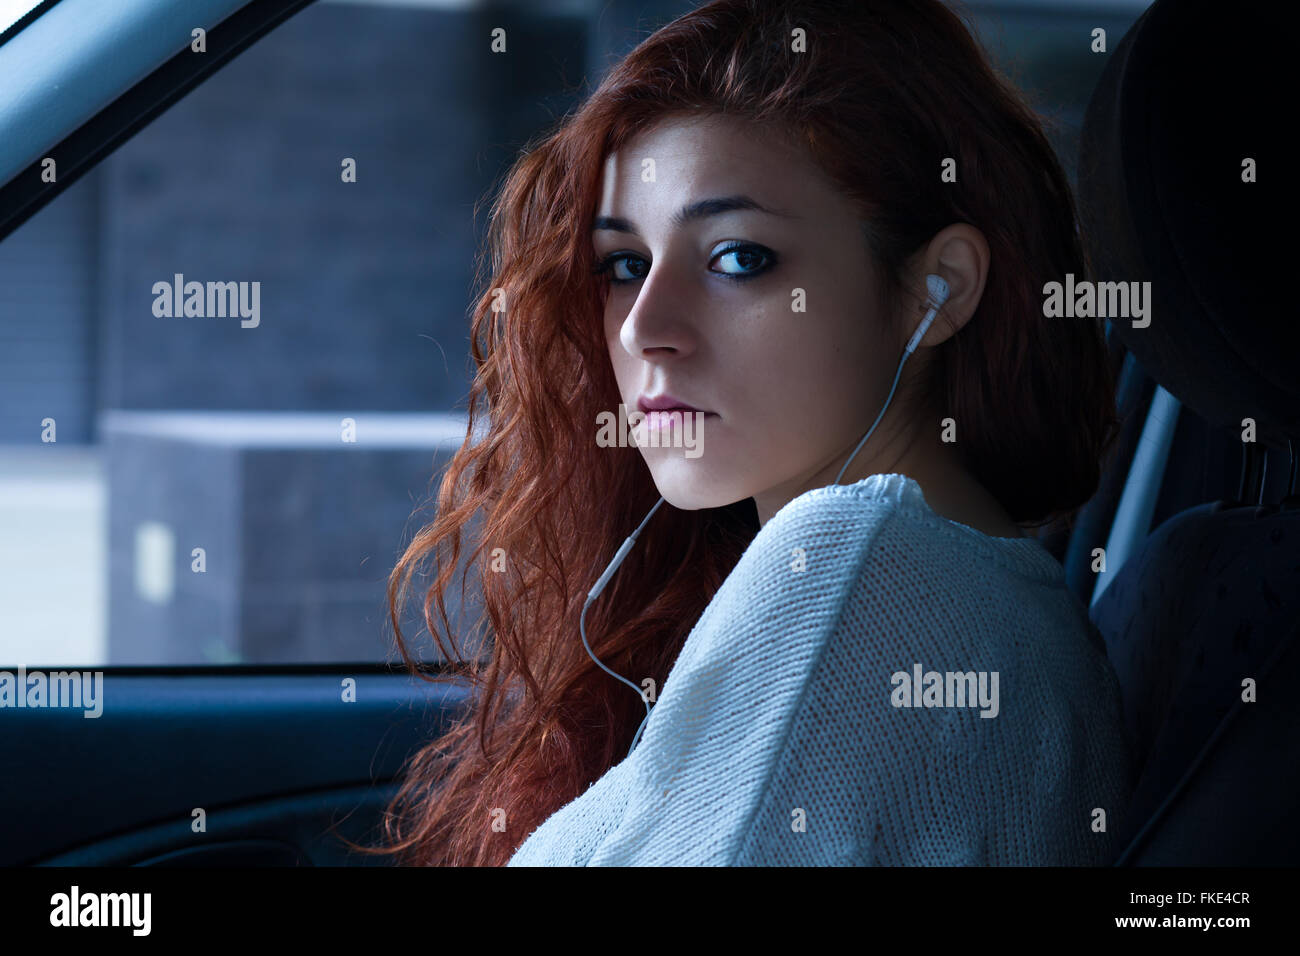 Redhead Woman with Earbuds Sitting in a Car - Stock Image